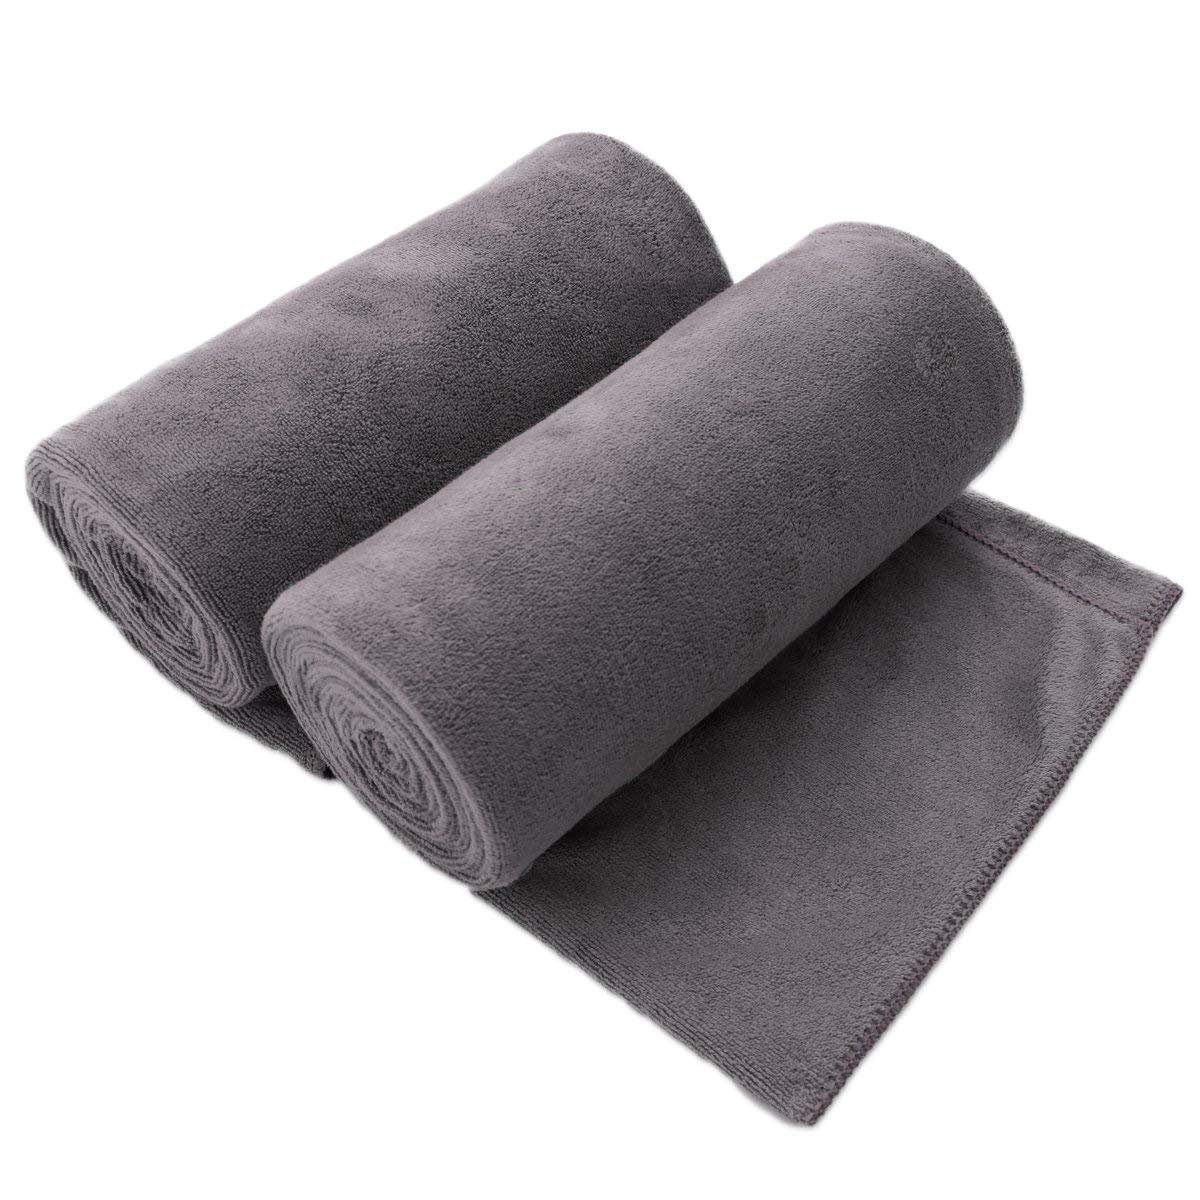 Jml Microfiber Bath Towels, Bath Towel 2 Pack(30'' x 60''), Oversized, Soft, Super Absorbent and Fast Drying, Antibacterial, No Fading Multipurpose Use for Sports, Travel, Fitness, Yoga - Grey by Jml